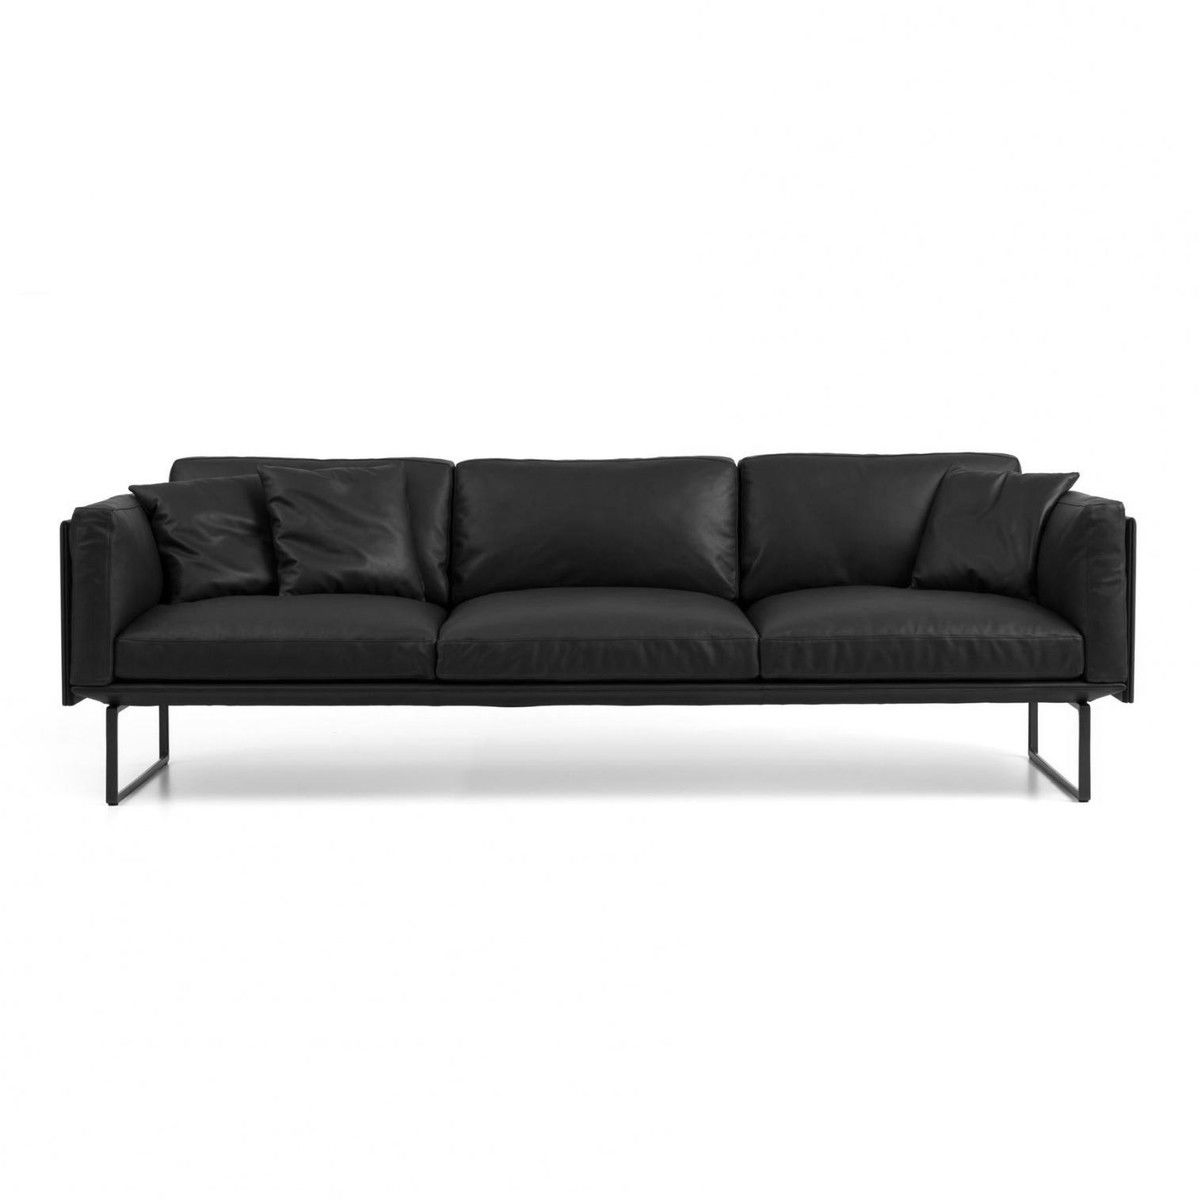 8 piero lissoni 3 seater leather sofa cassina